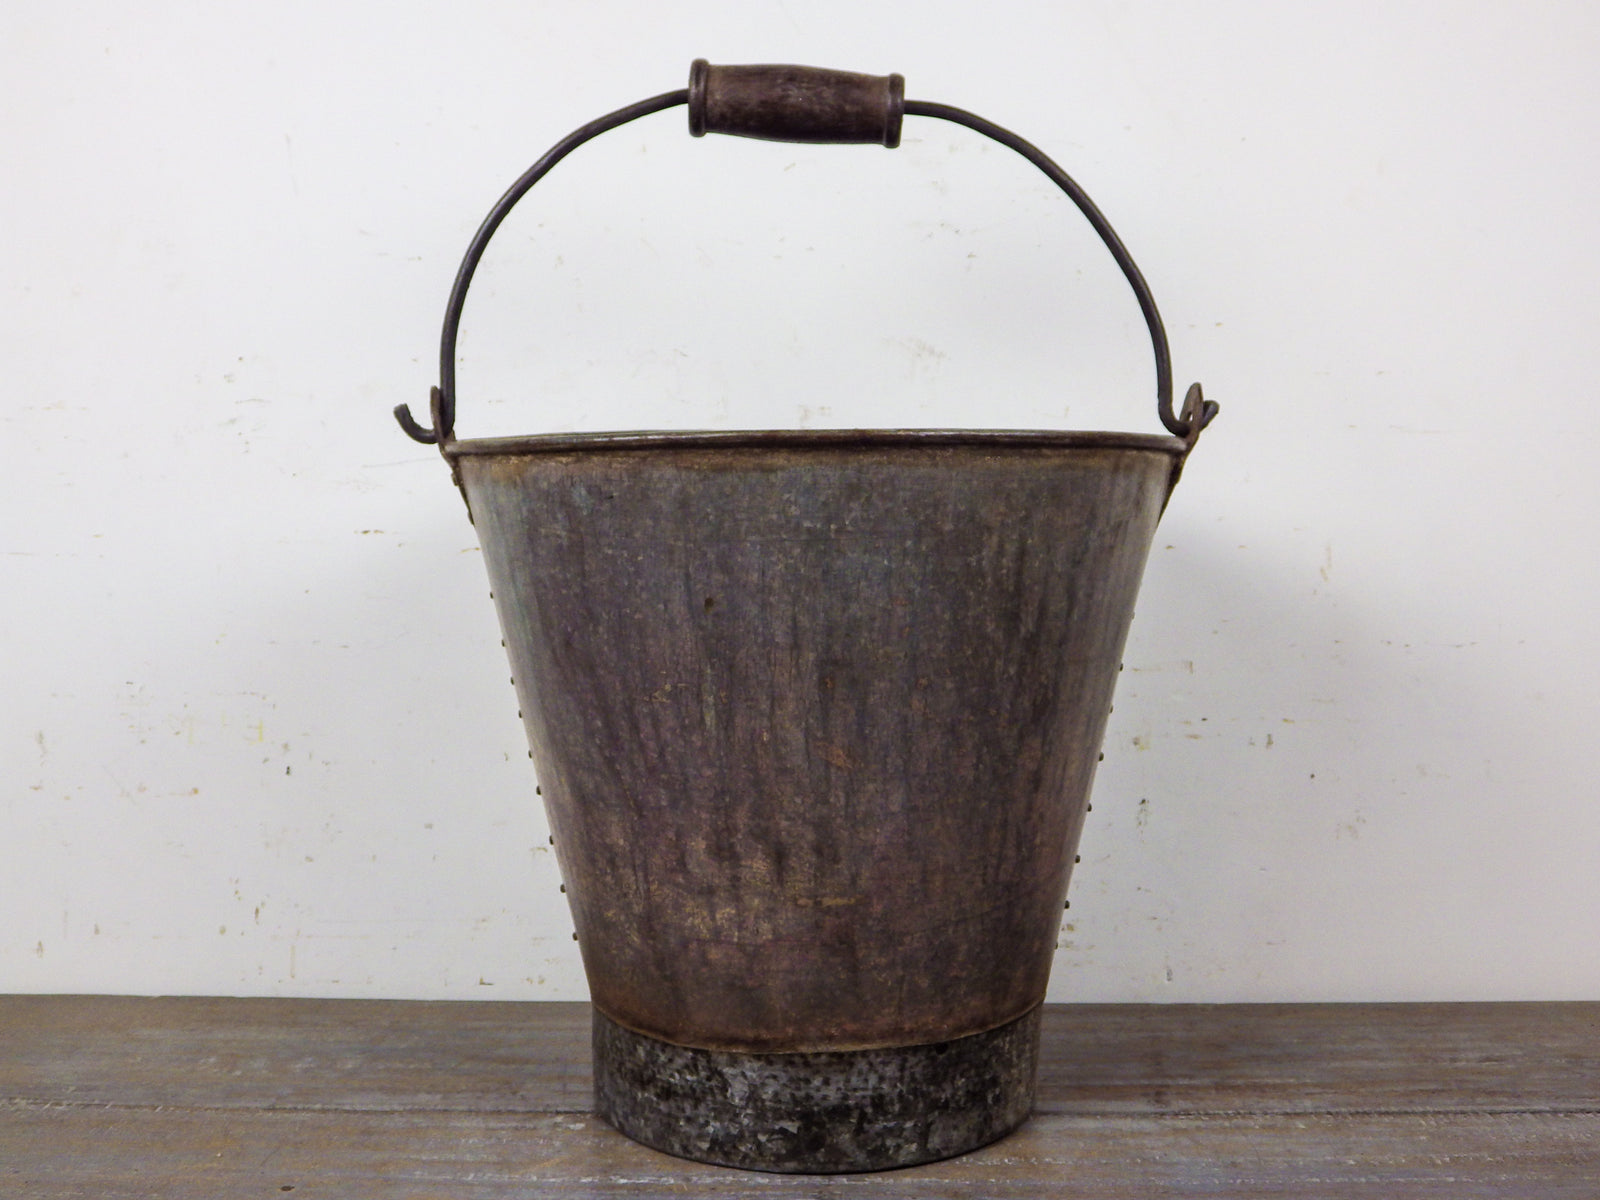 MILL-698/4 Metal Bucket with Wooden Handle C8